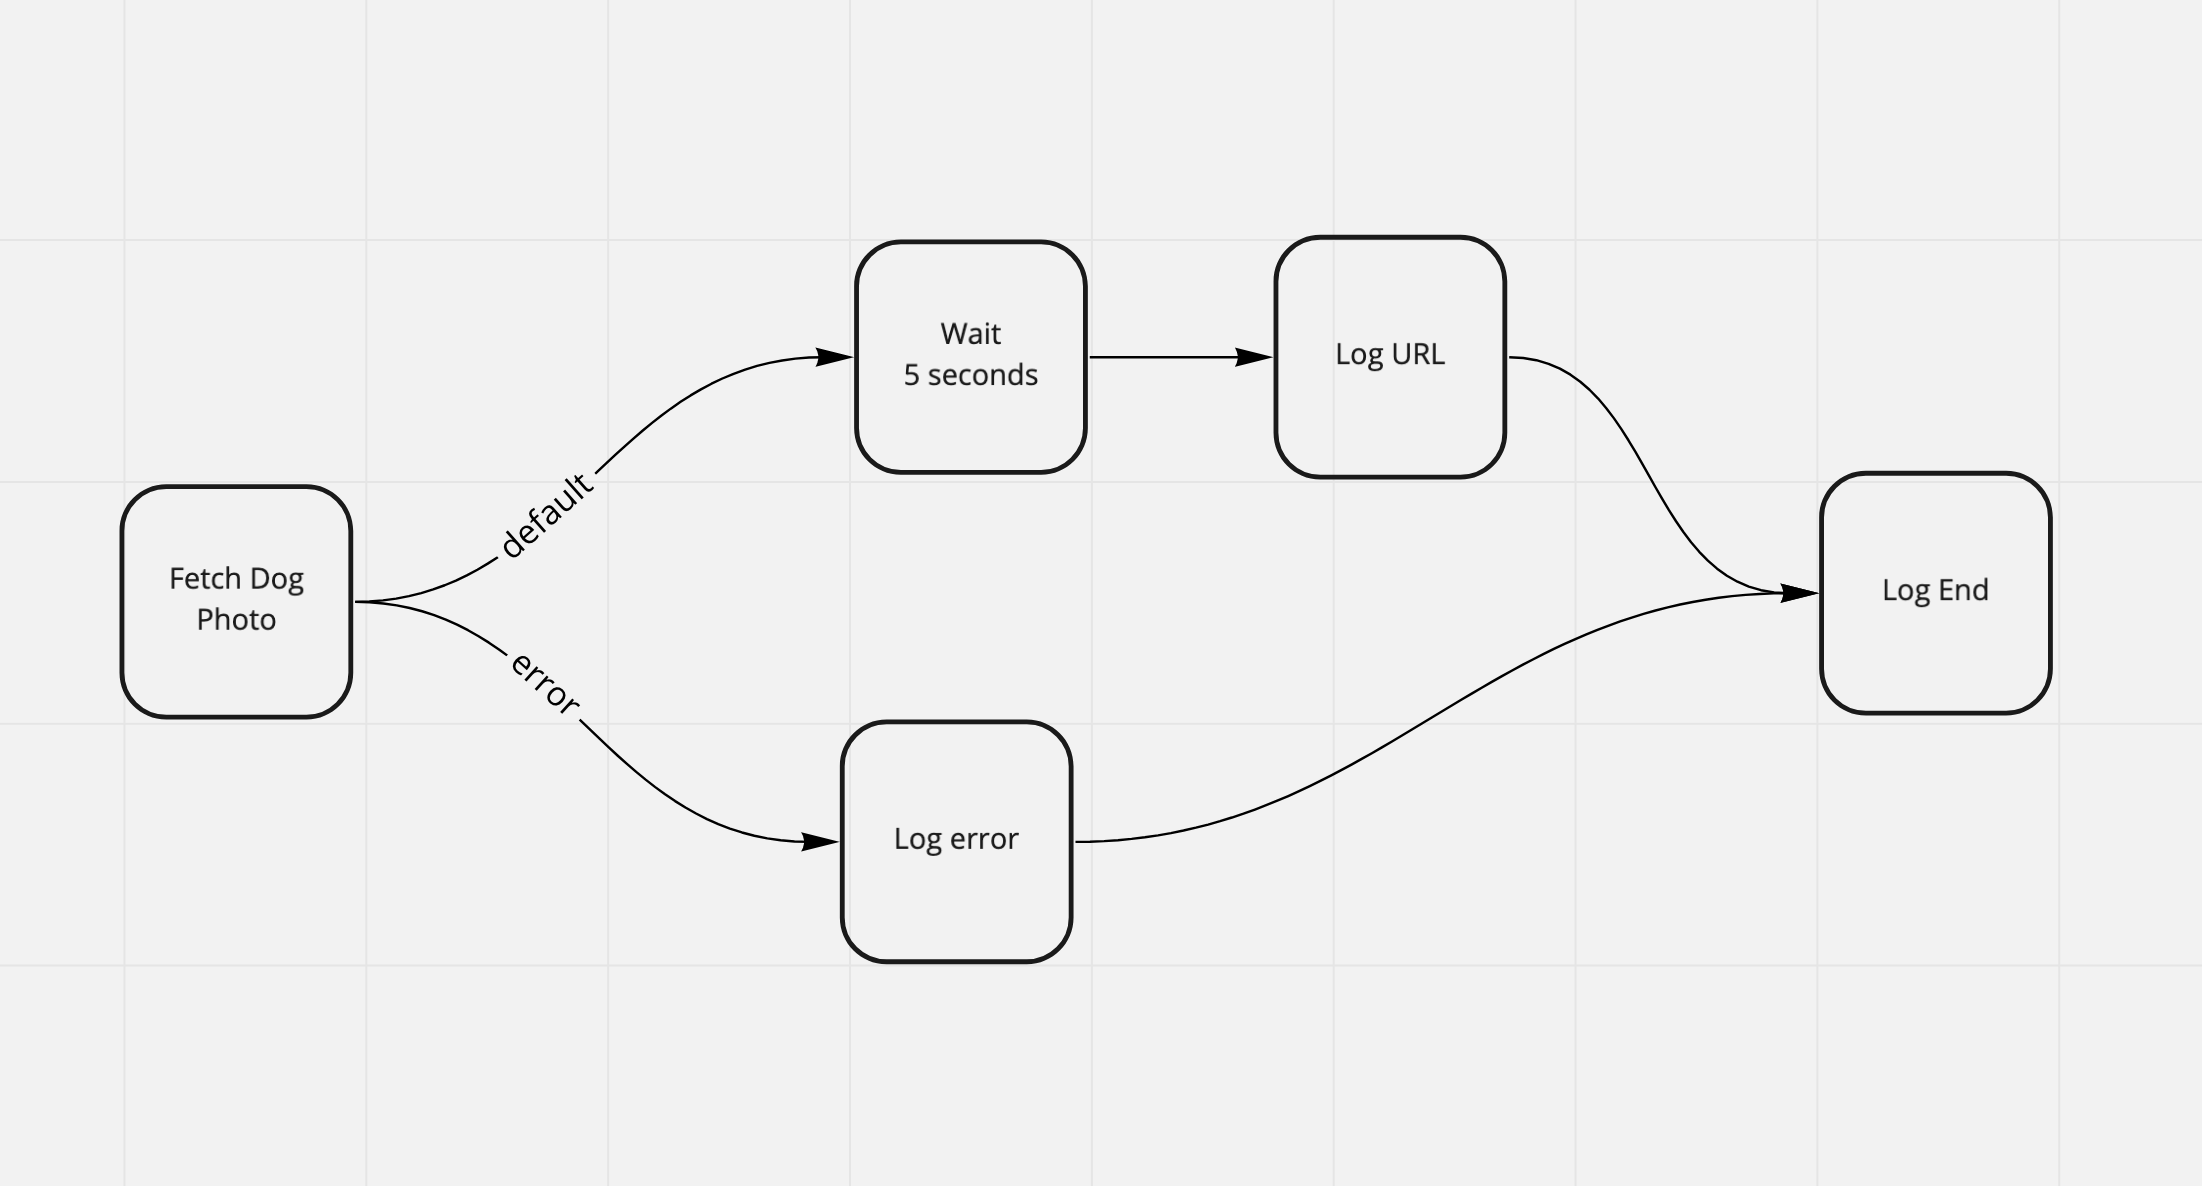 Image of Workflow